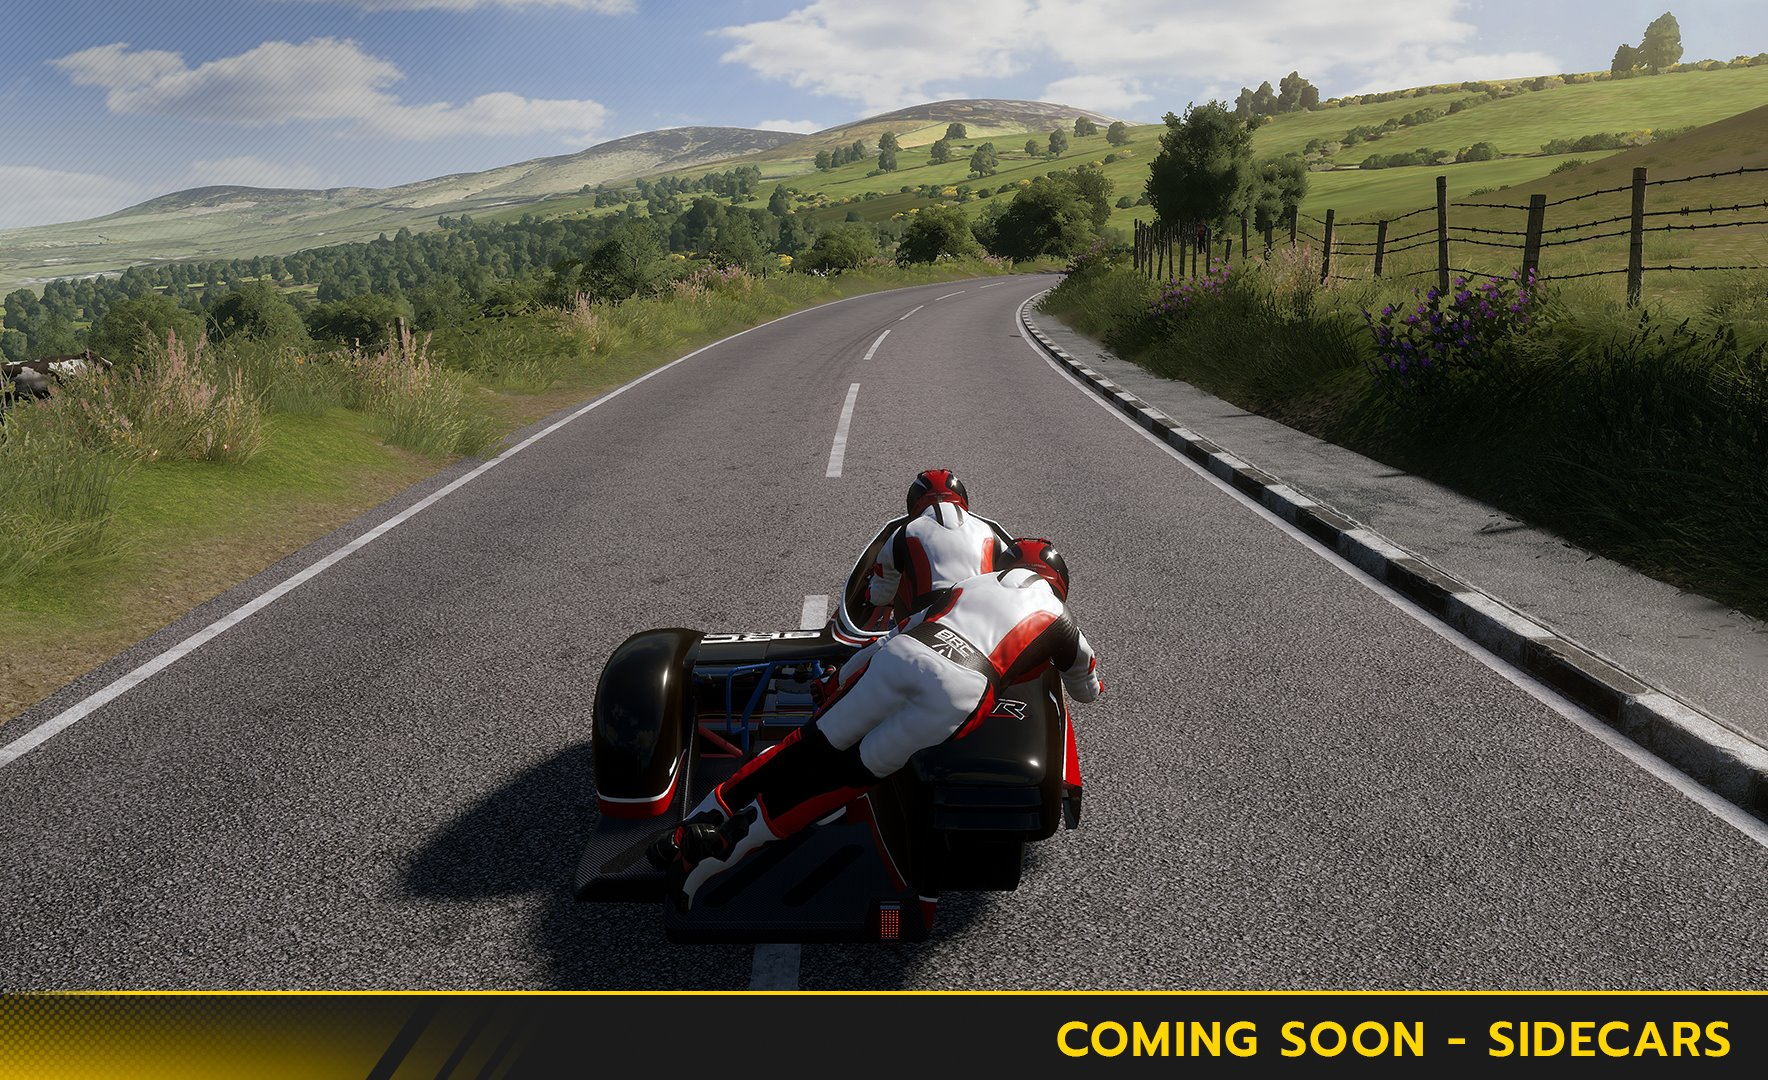 TT Isle of Man the Game - Sidecars Announced 2.jpg